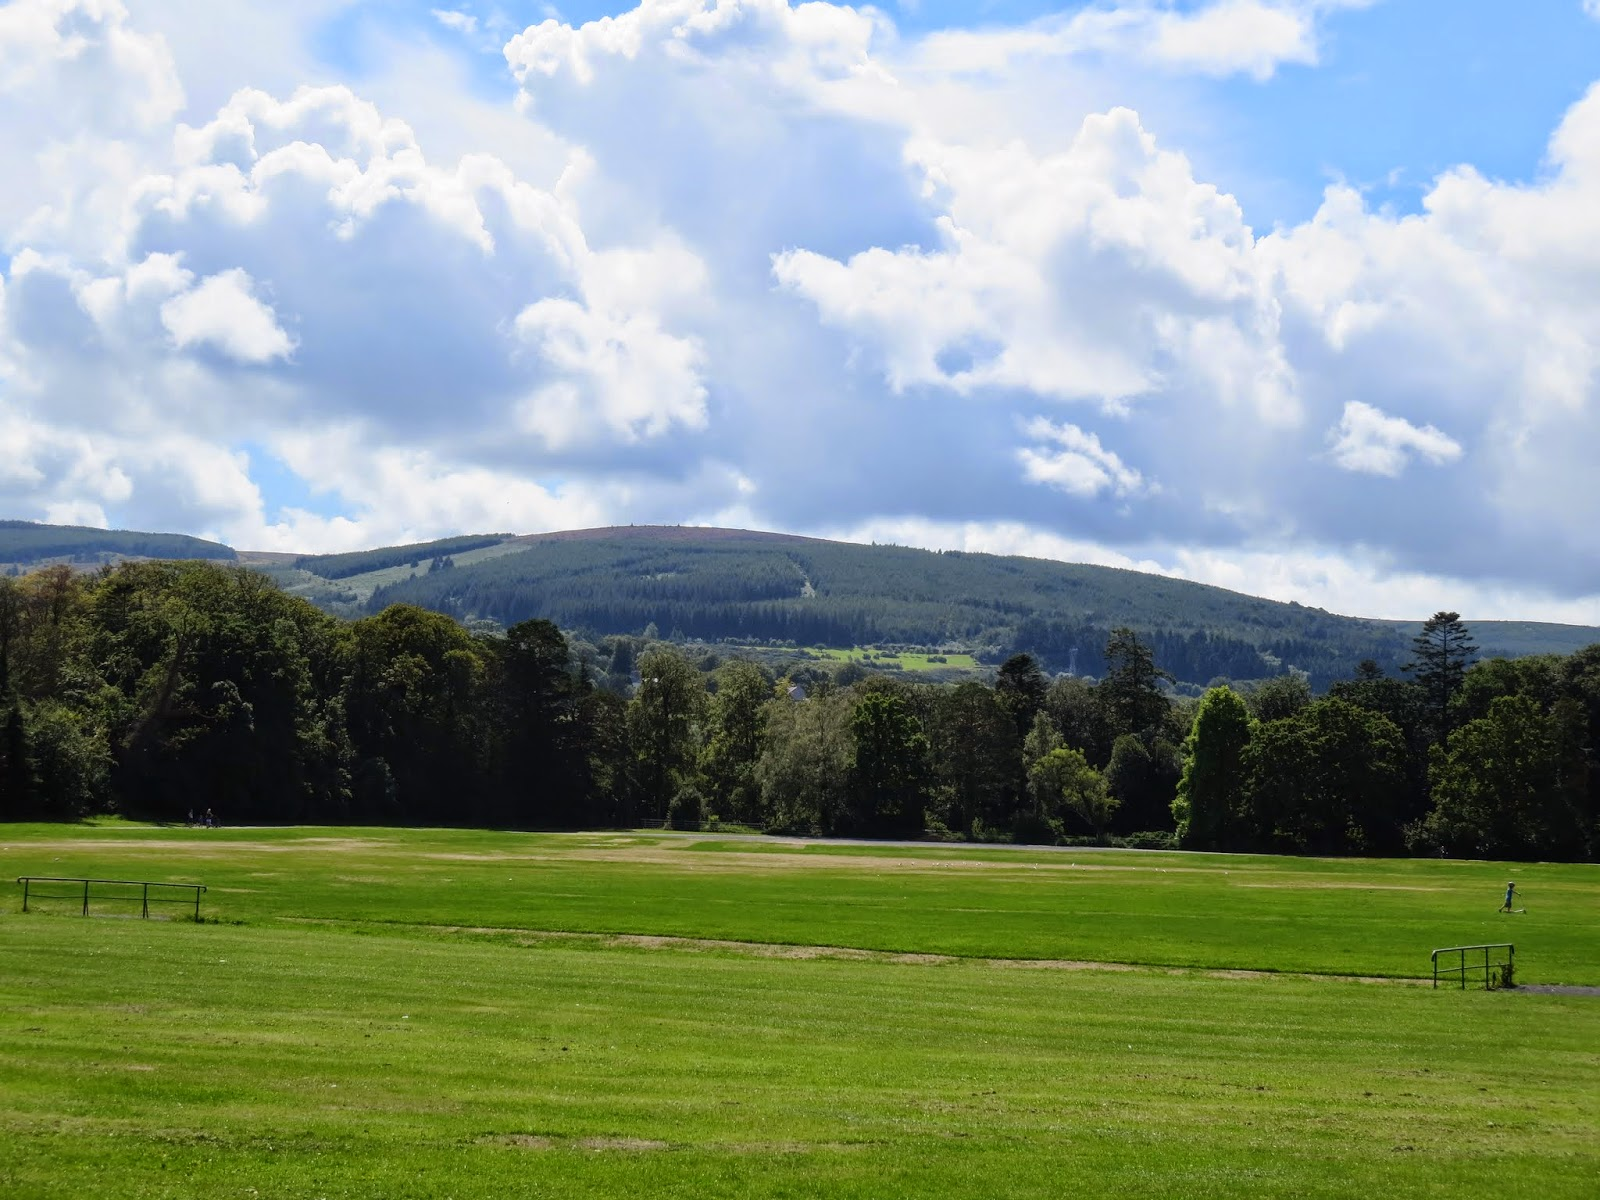 Wicklow Mountains Viewed from Marlay Park